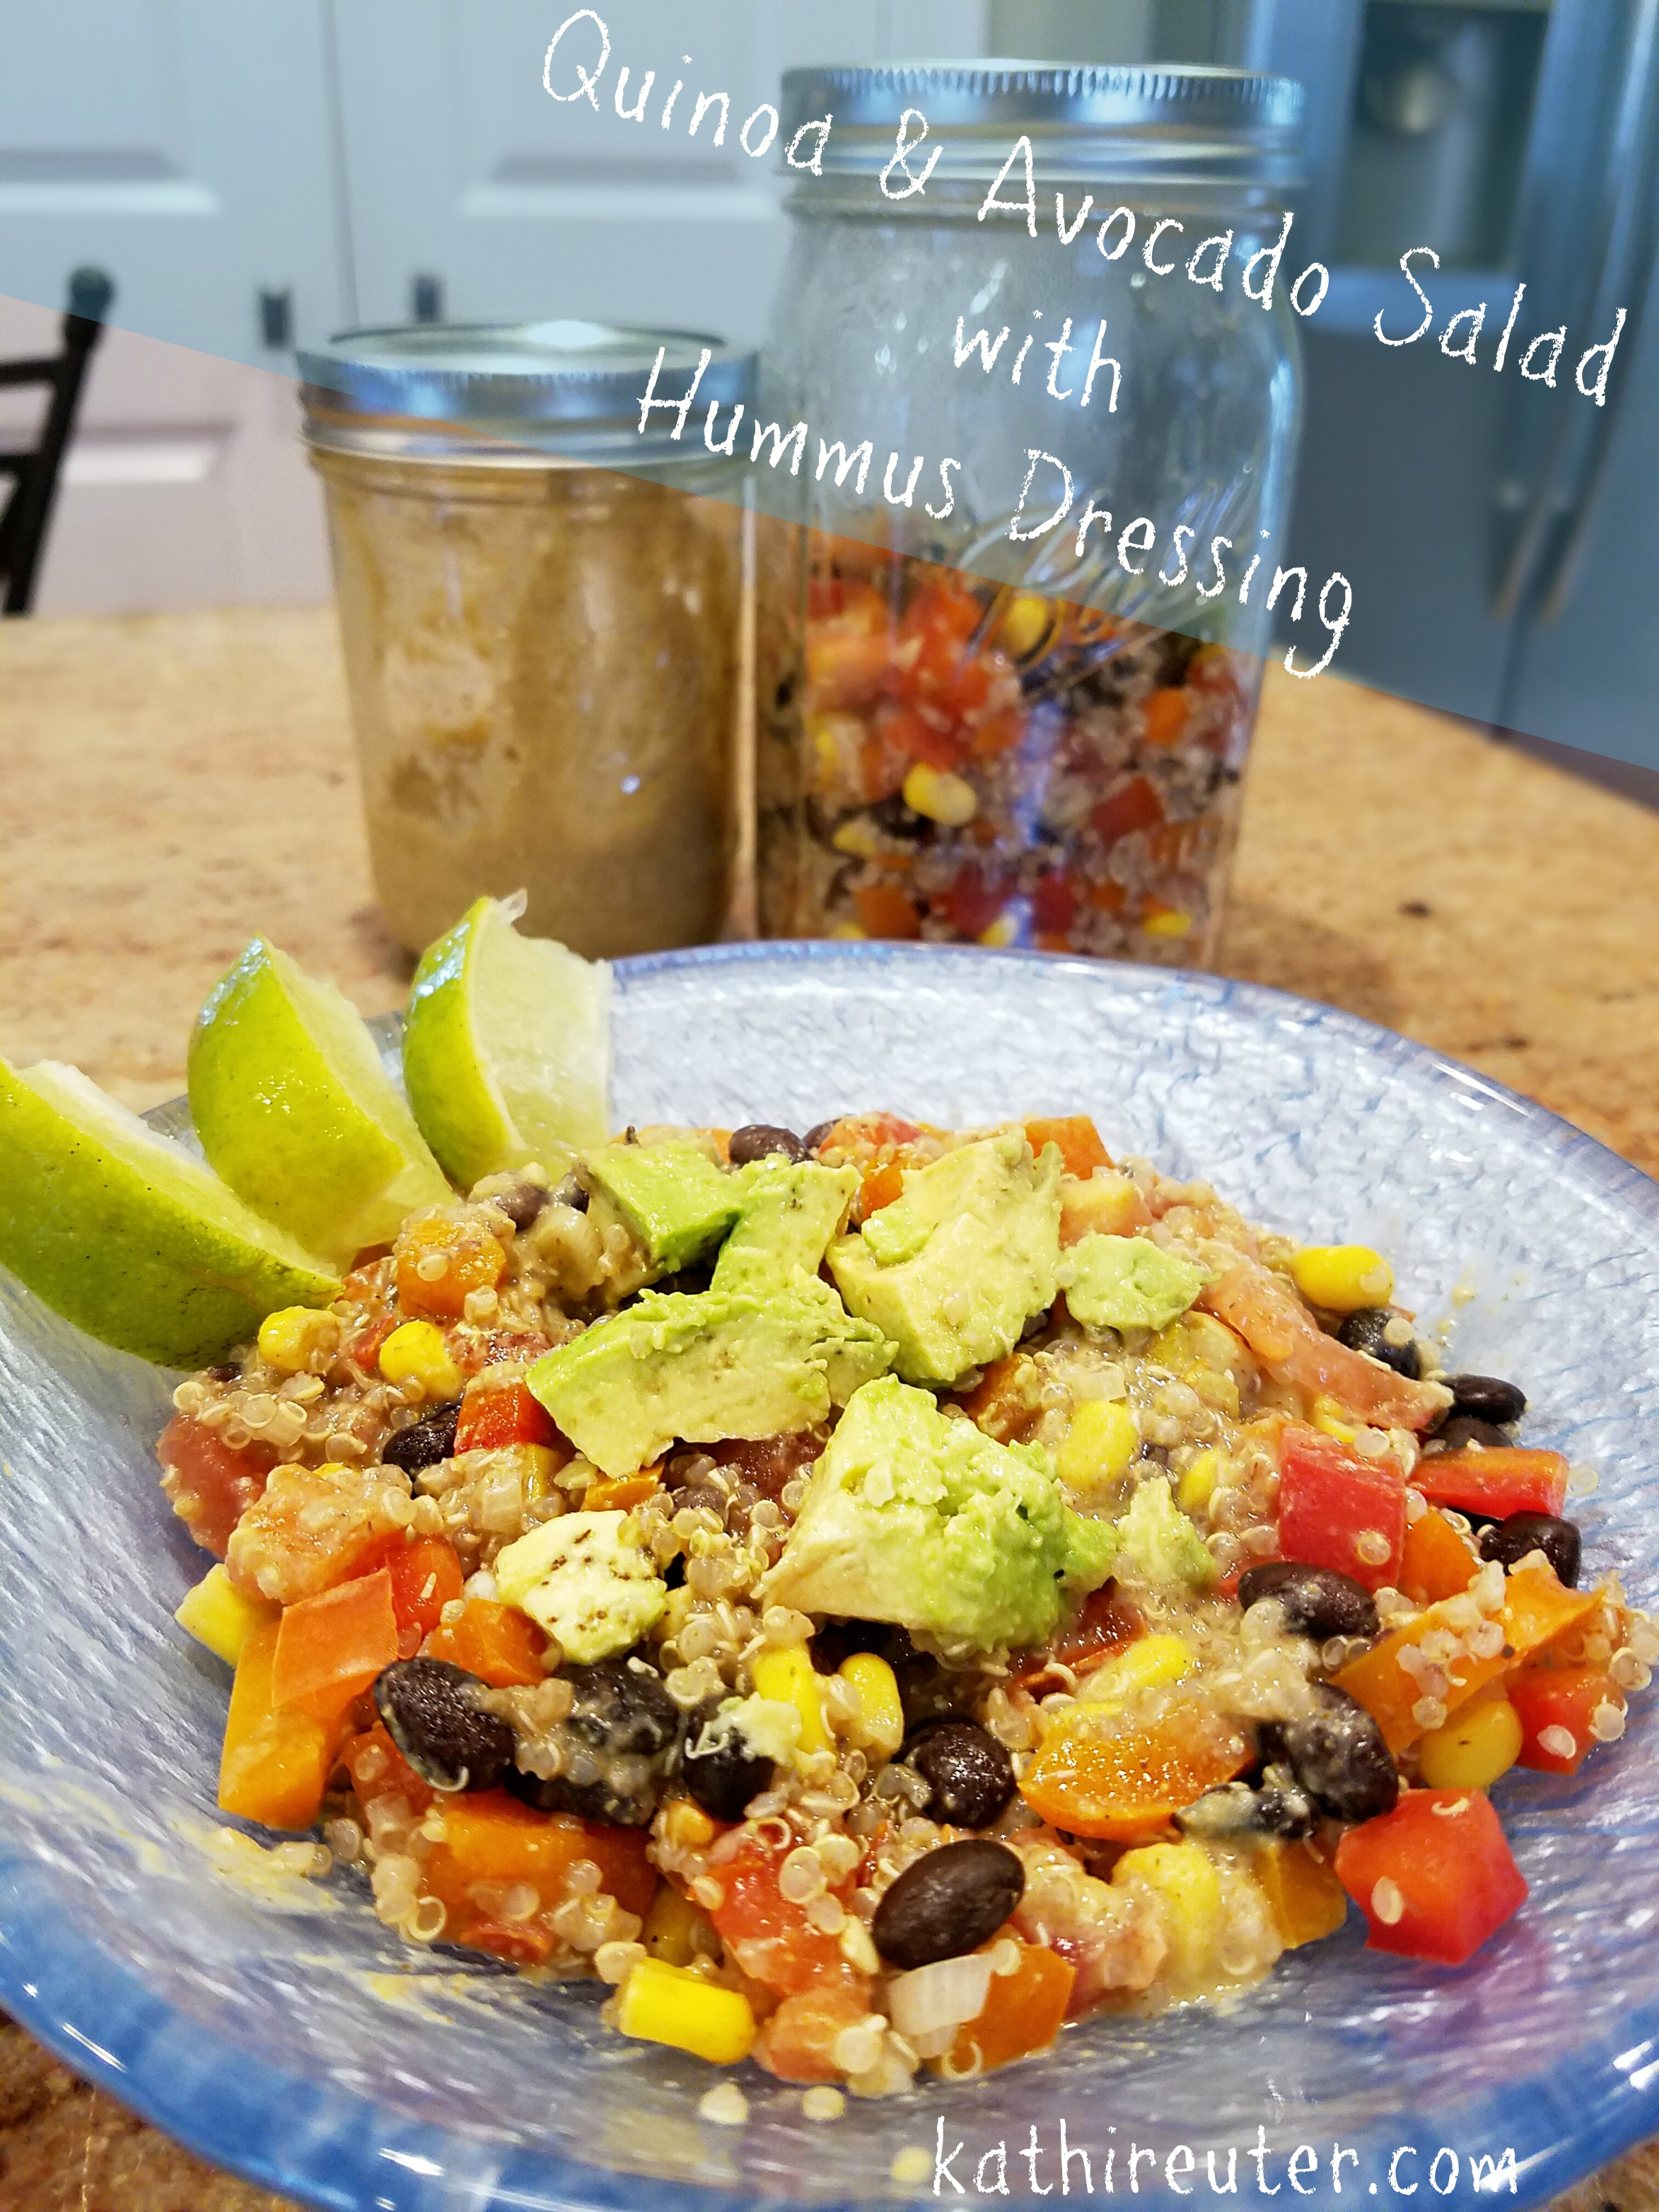 Quinoa and Avocado Salad with Hummus Dressing | Clean Eating Recipes